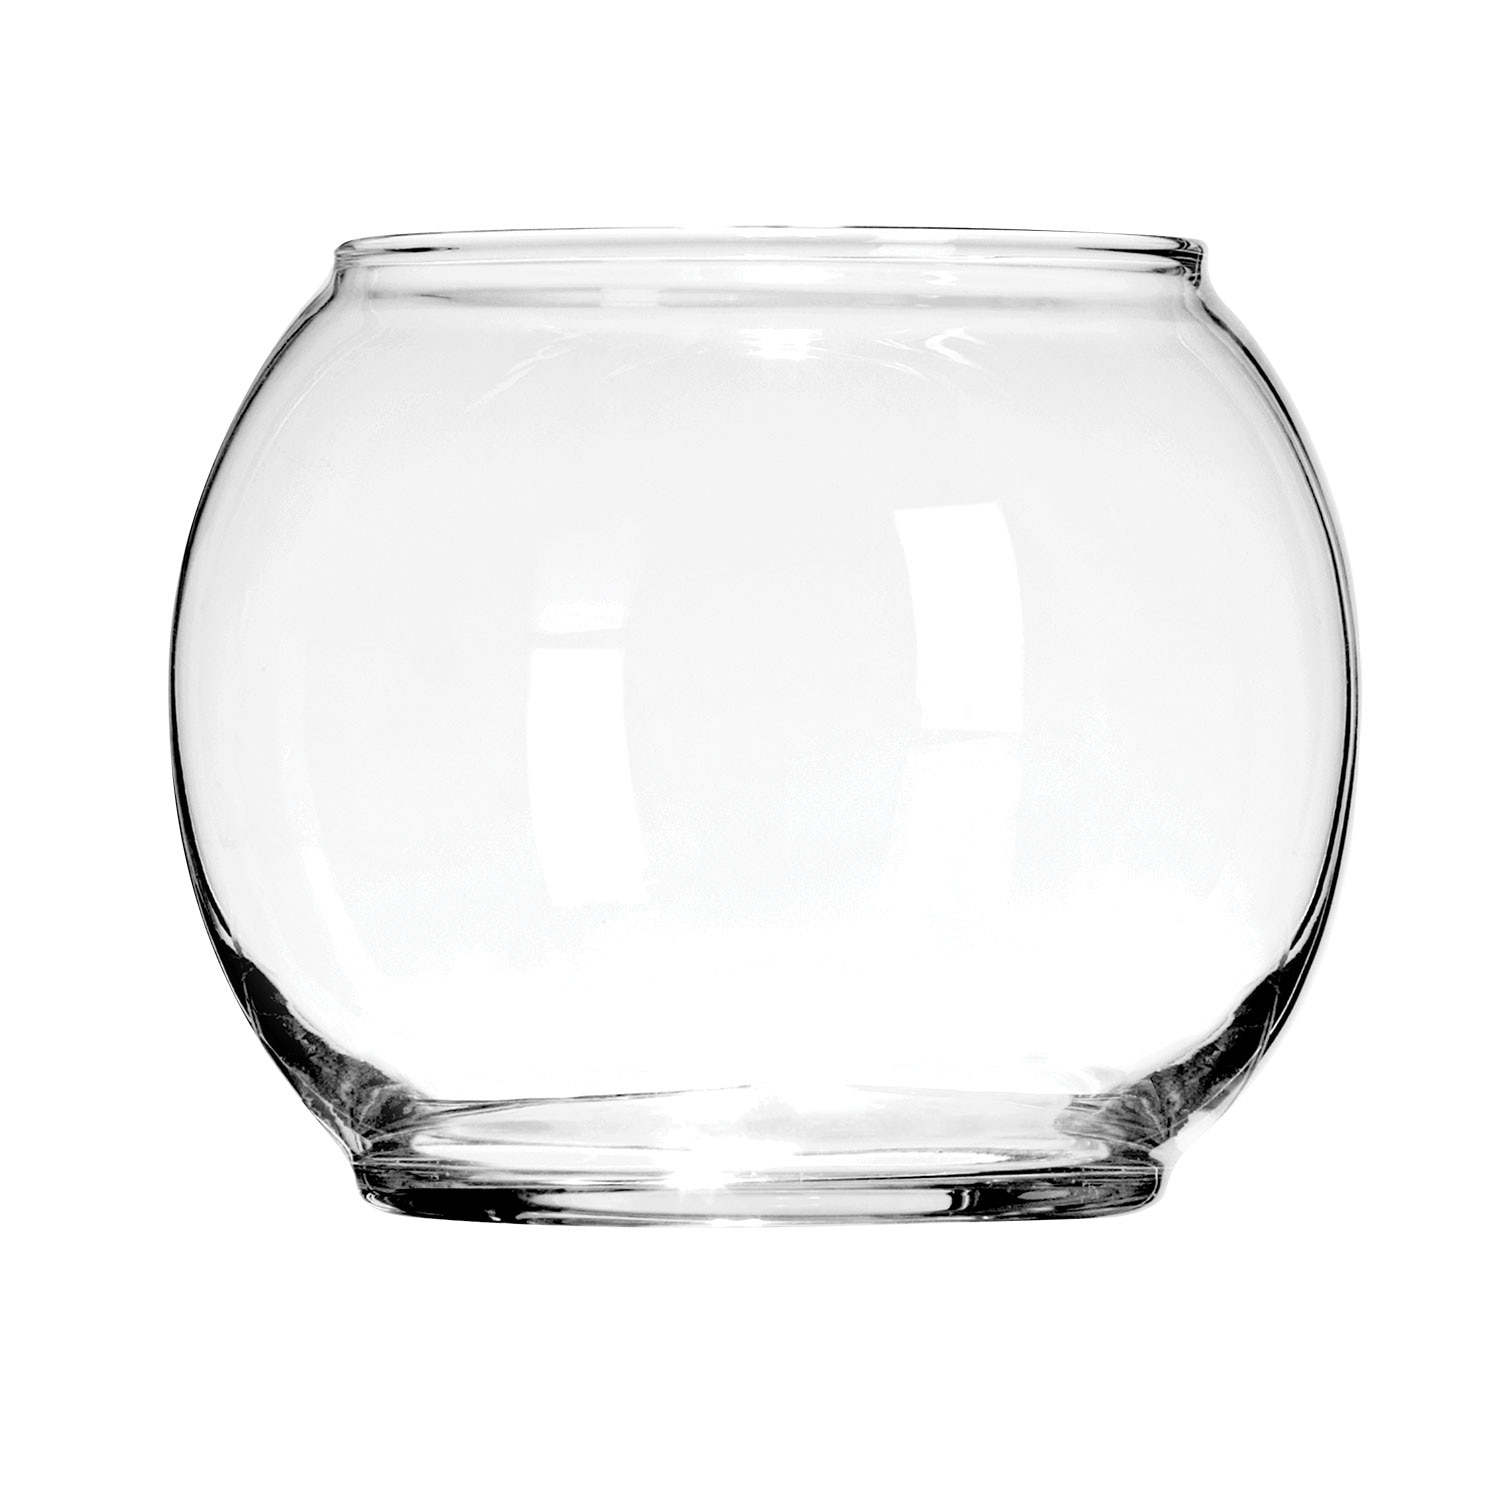 Glass Bowl Dollar Tree Inc